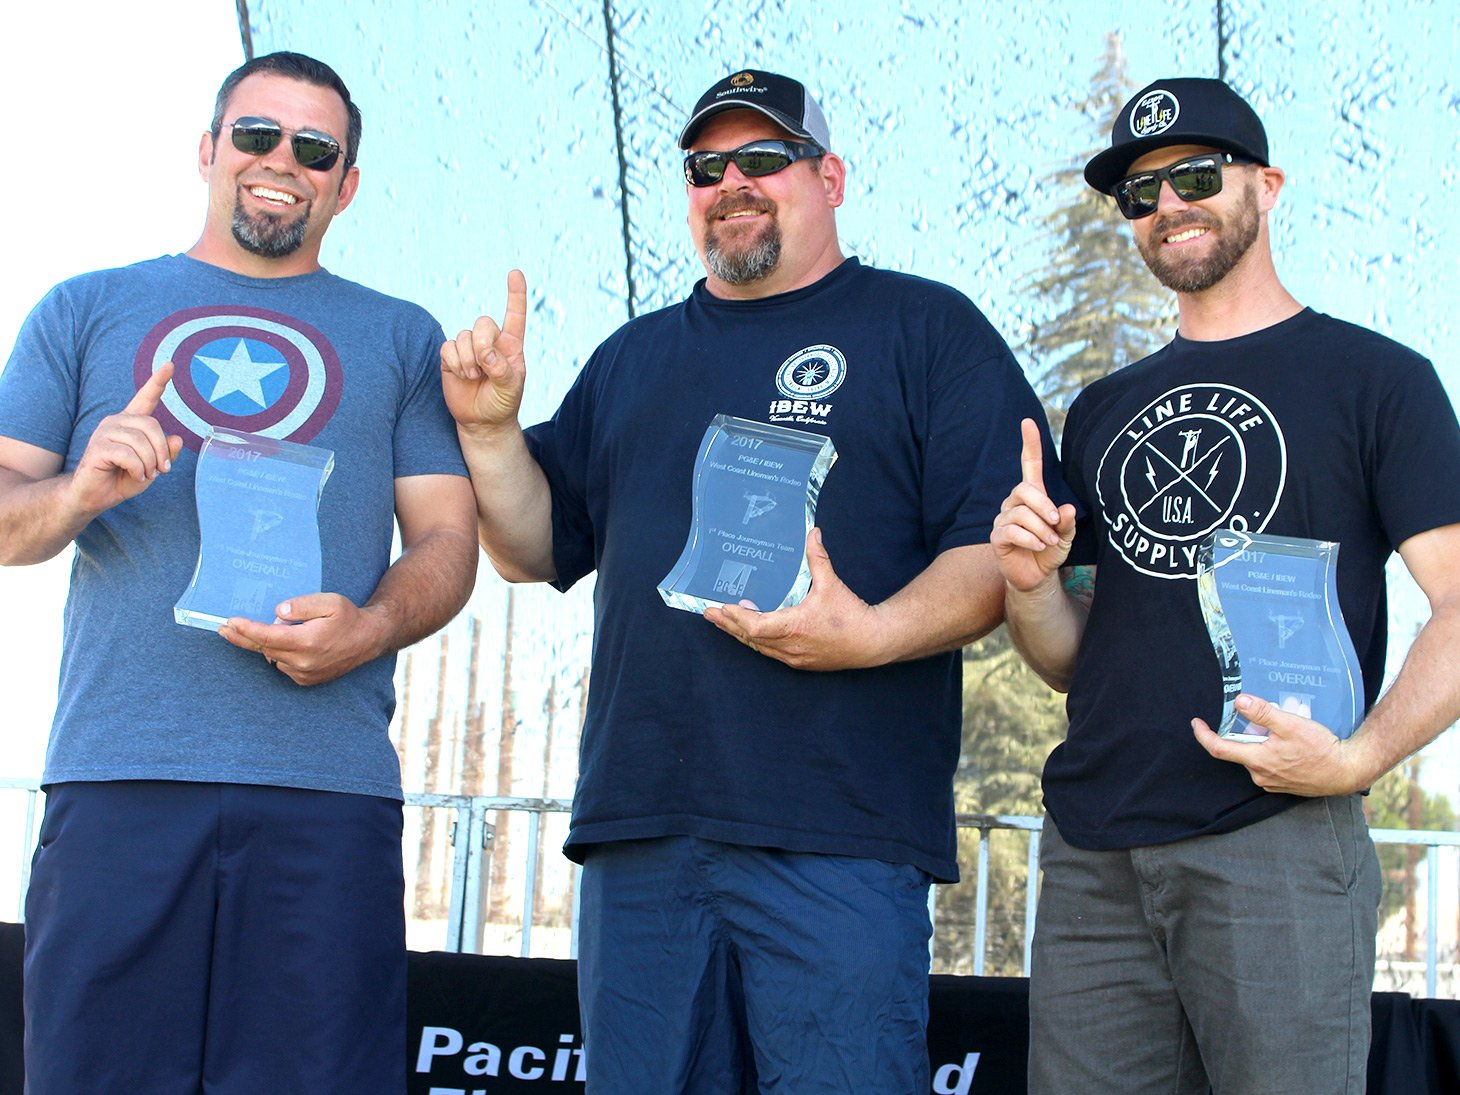 1st Place - The Has Beens, 2nd Place - MID, 3rd PG&E 1